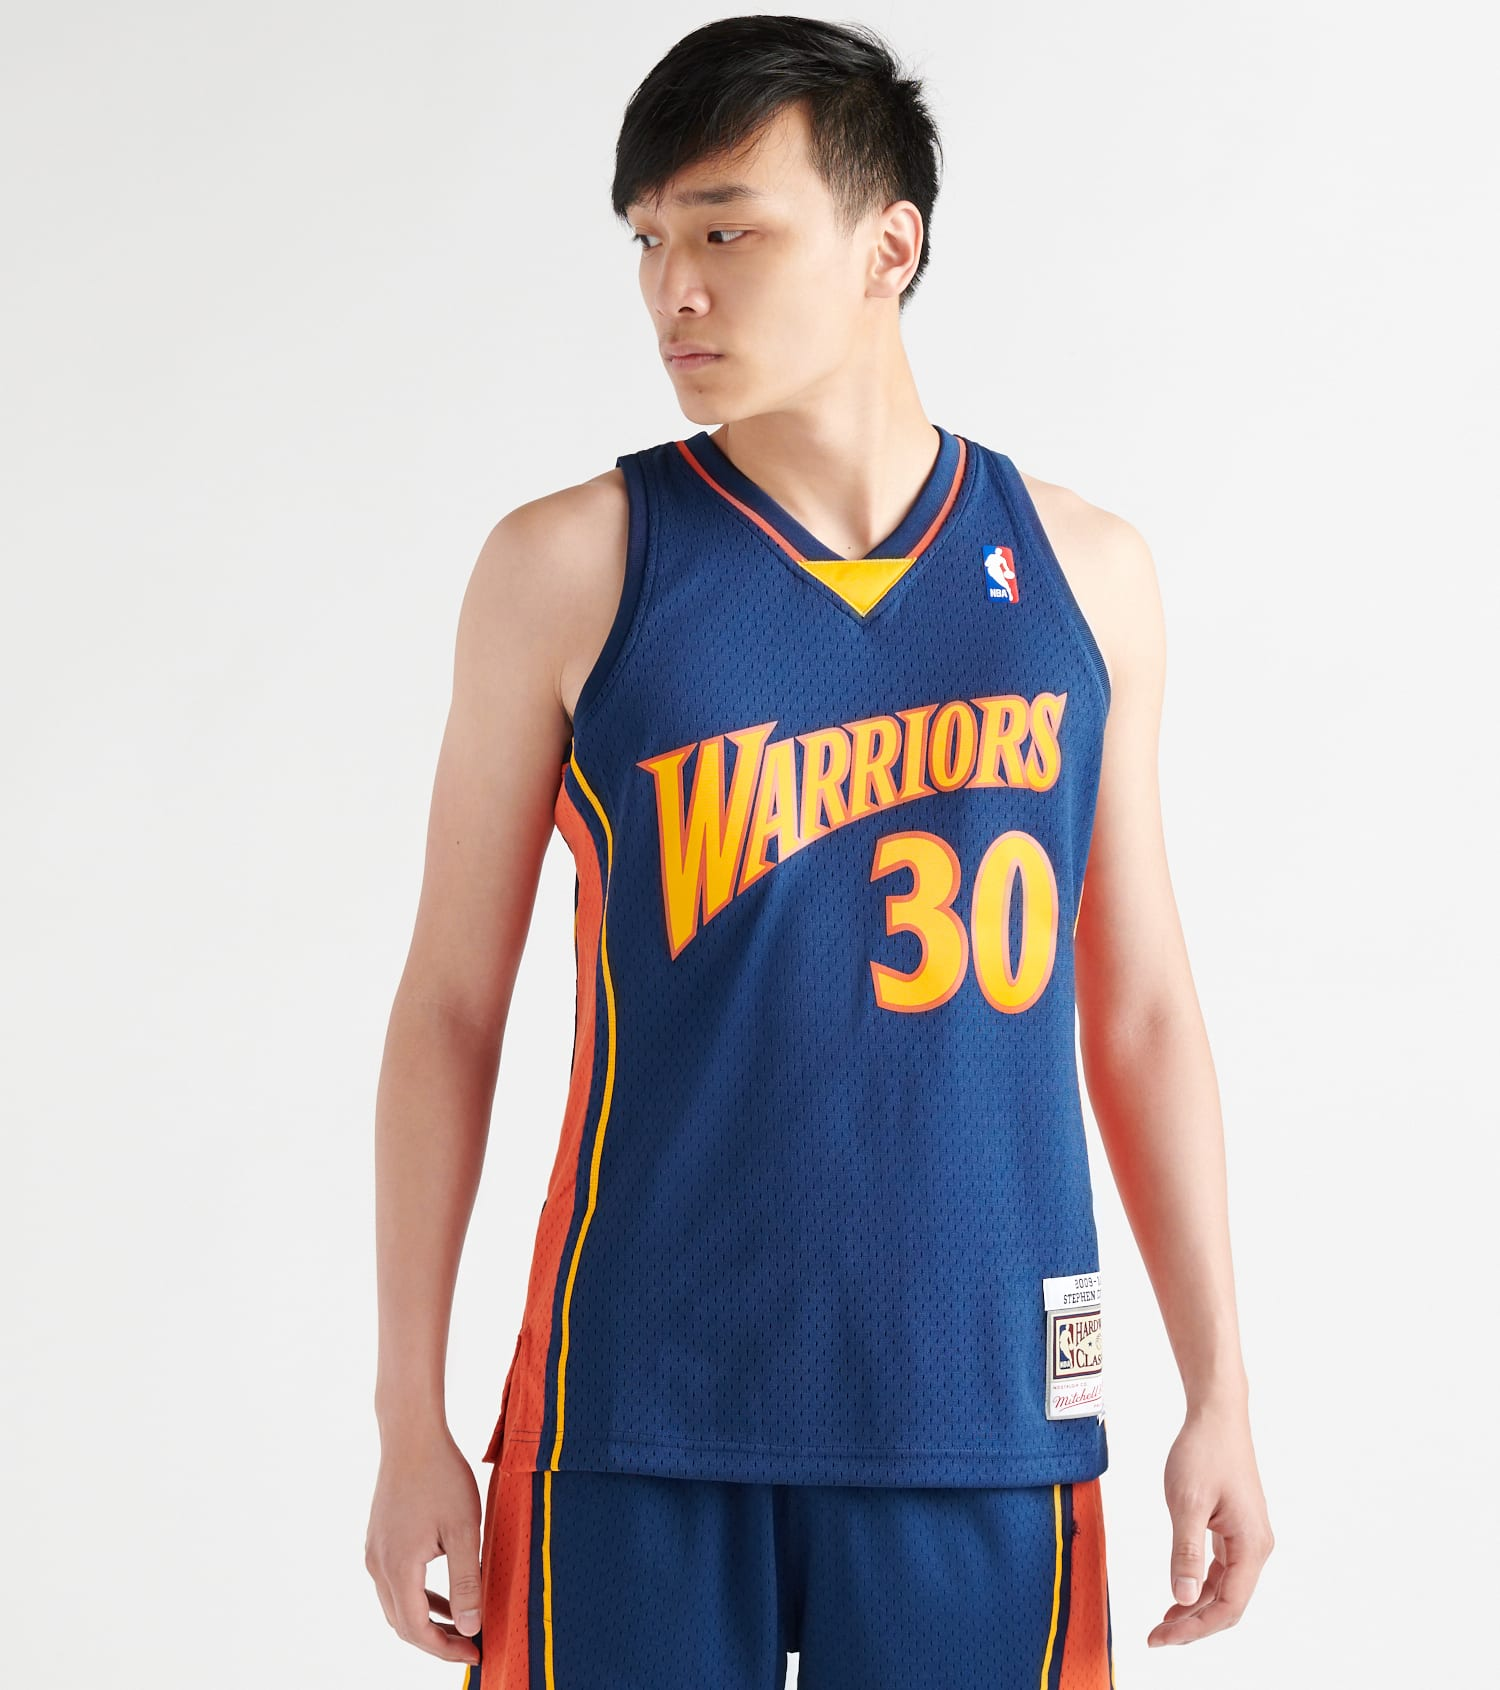 official photos 3357e 7cb4f Steph Curry Warriors Swingman Jersey